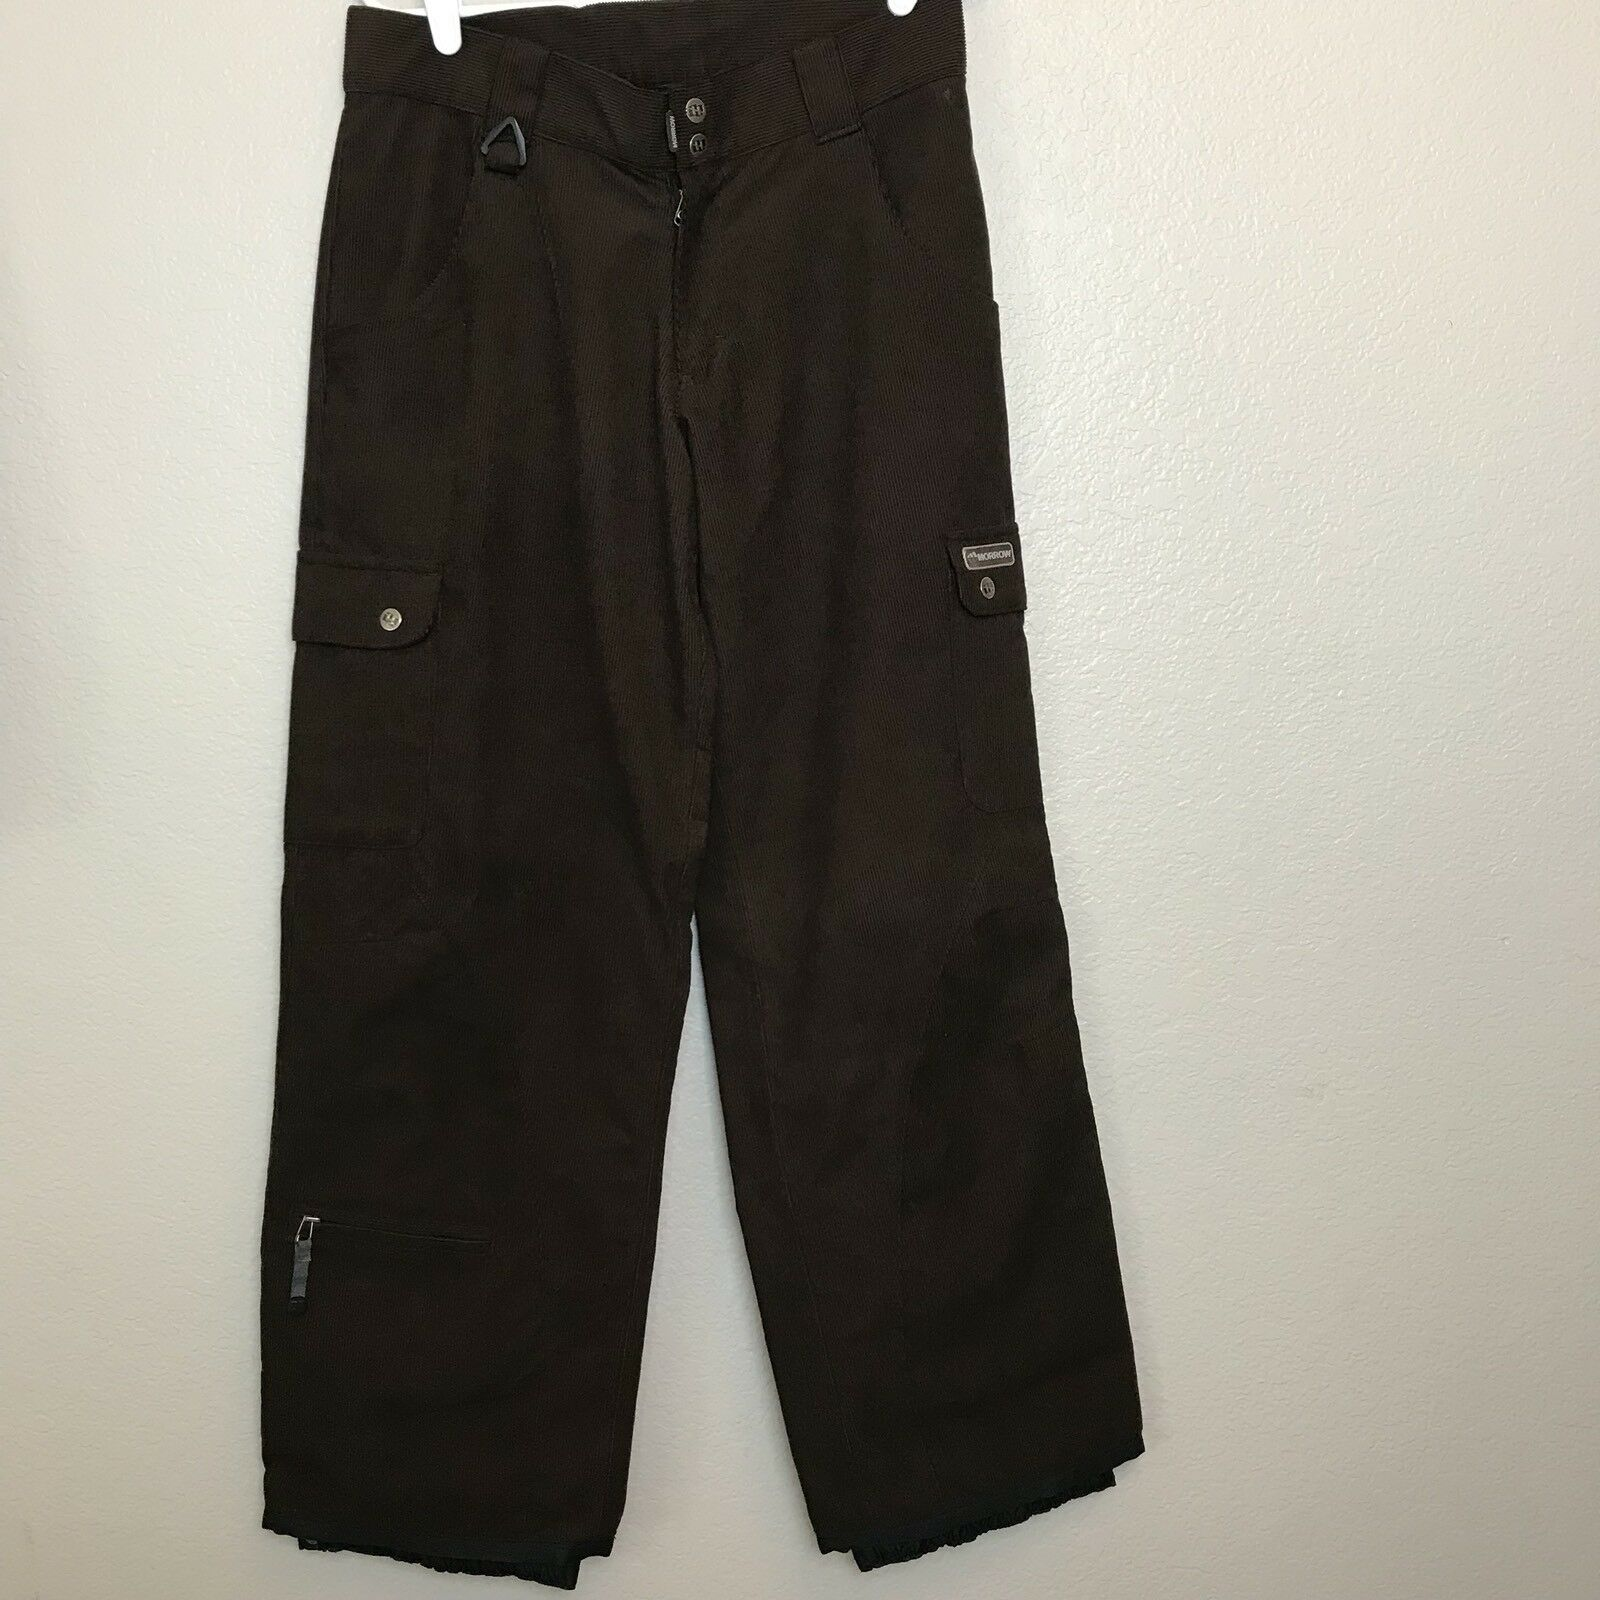 Morrow Snowboard Pants Womens Size Med Corduroy Chocolate Brown Cargo B48